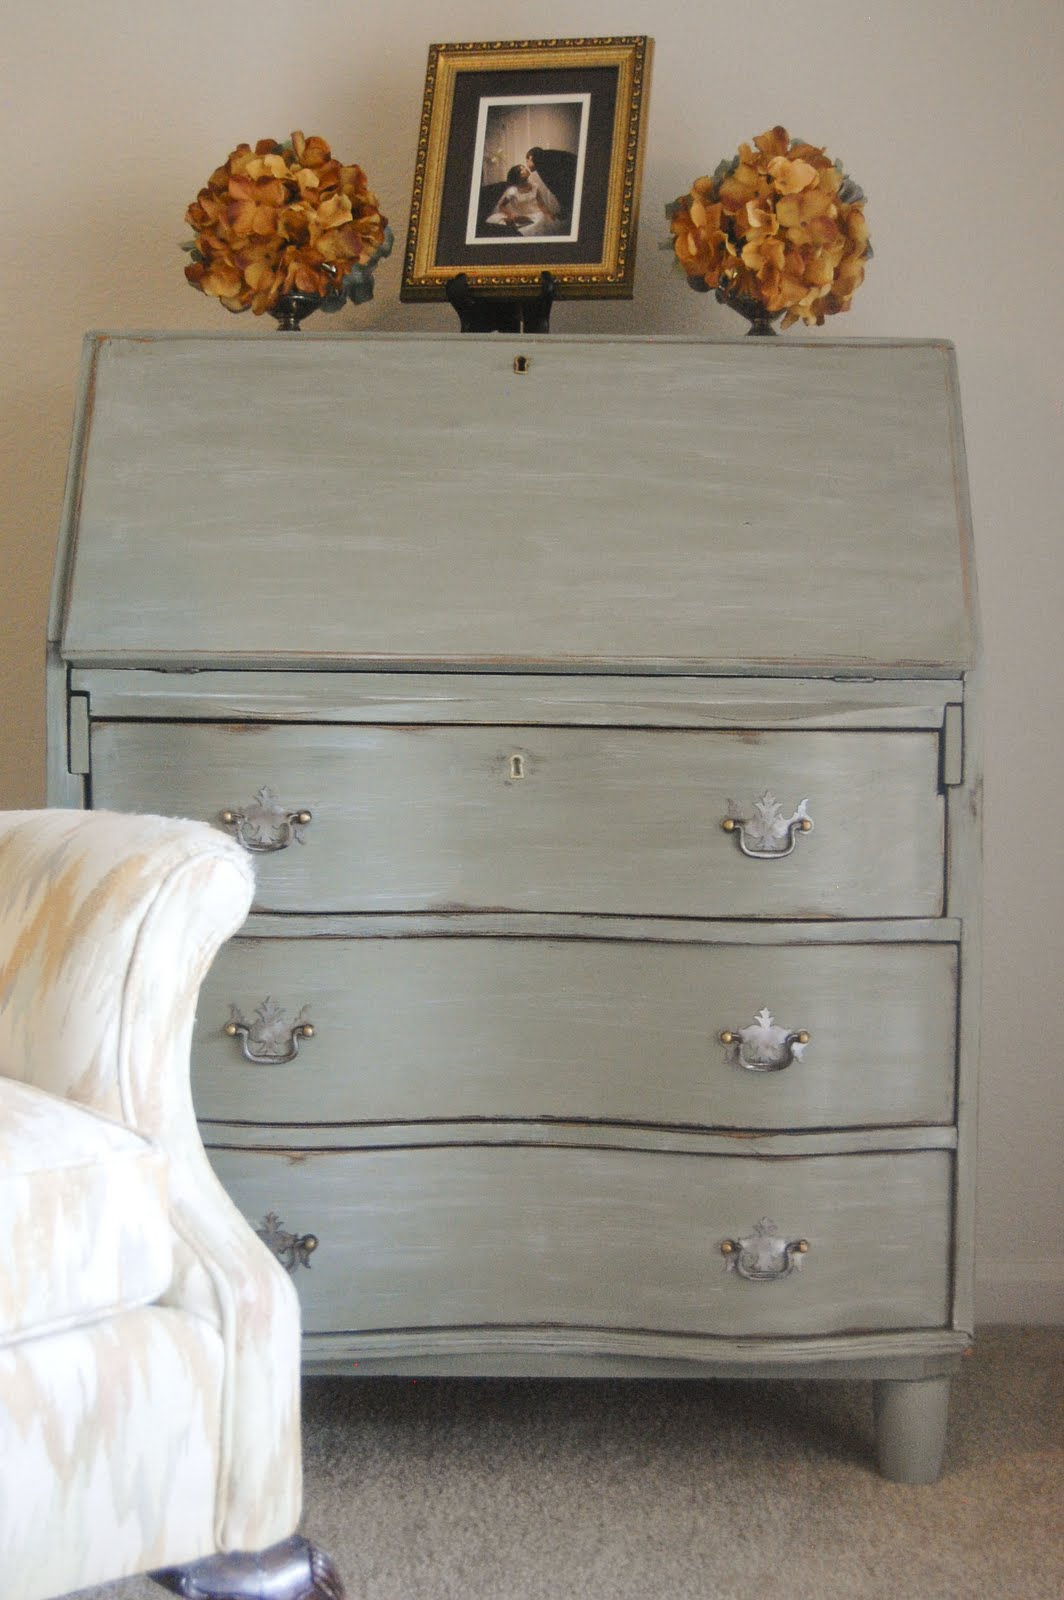 Secretary Desk In Basil Milk Paint Topped With Snow White